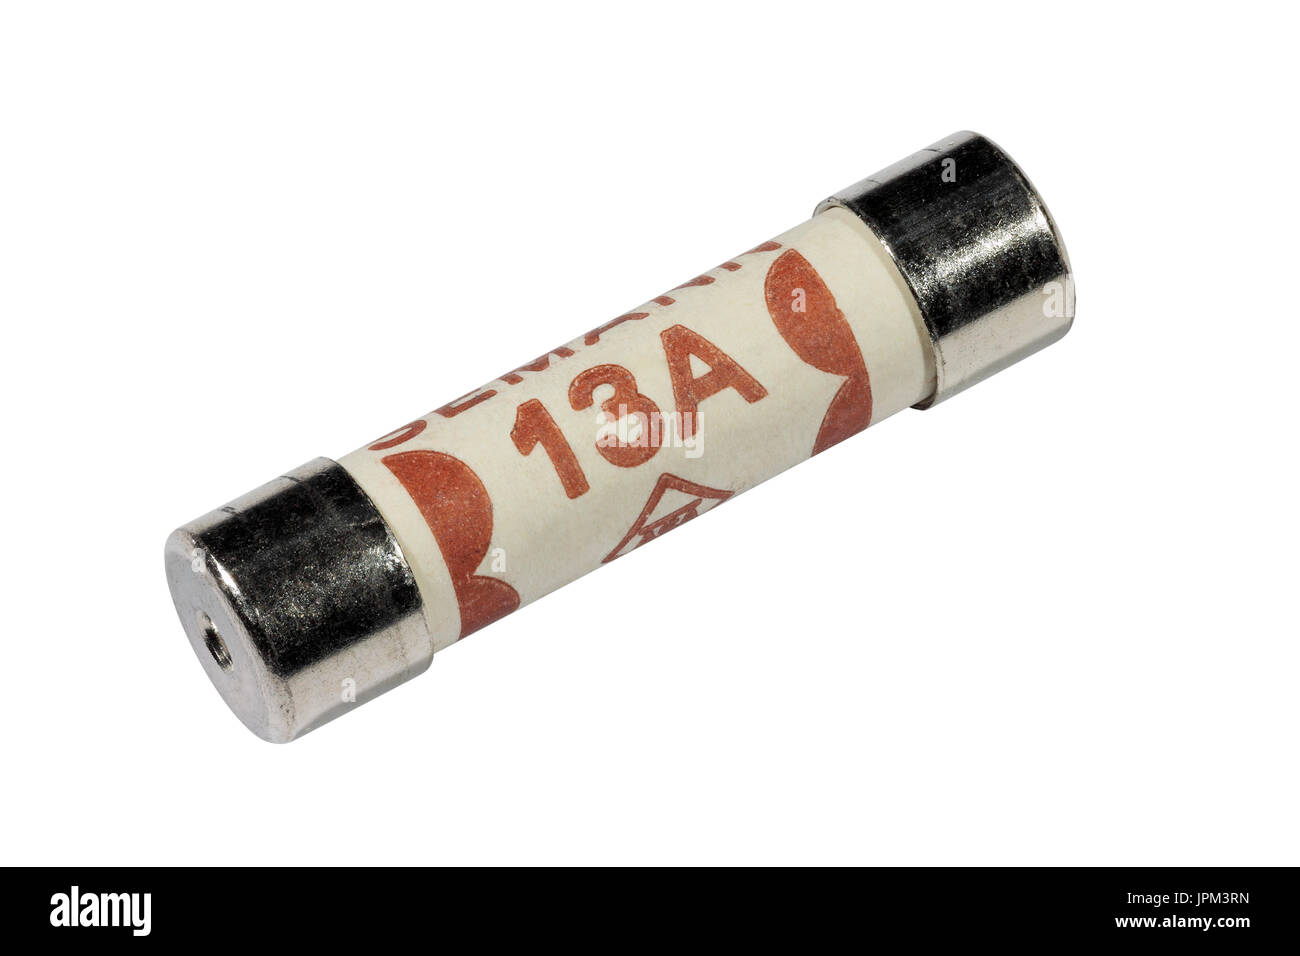 A 13 amp electrical fuse isolated on a white background - Stock Image